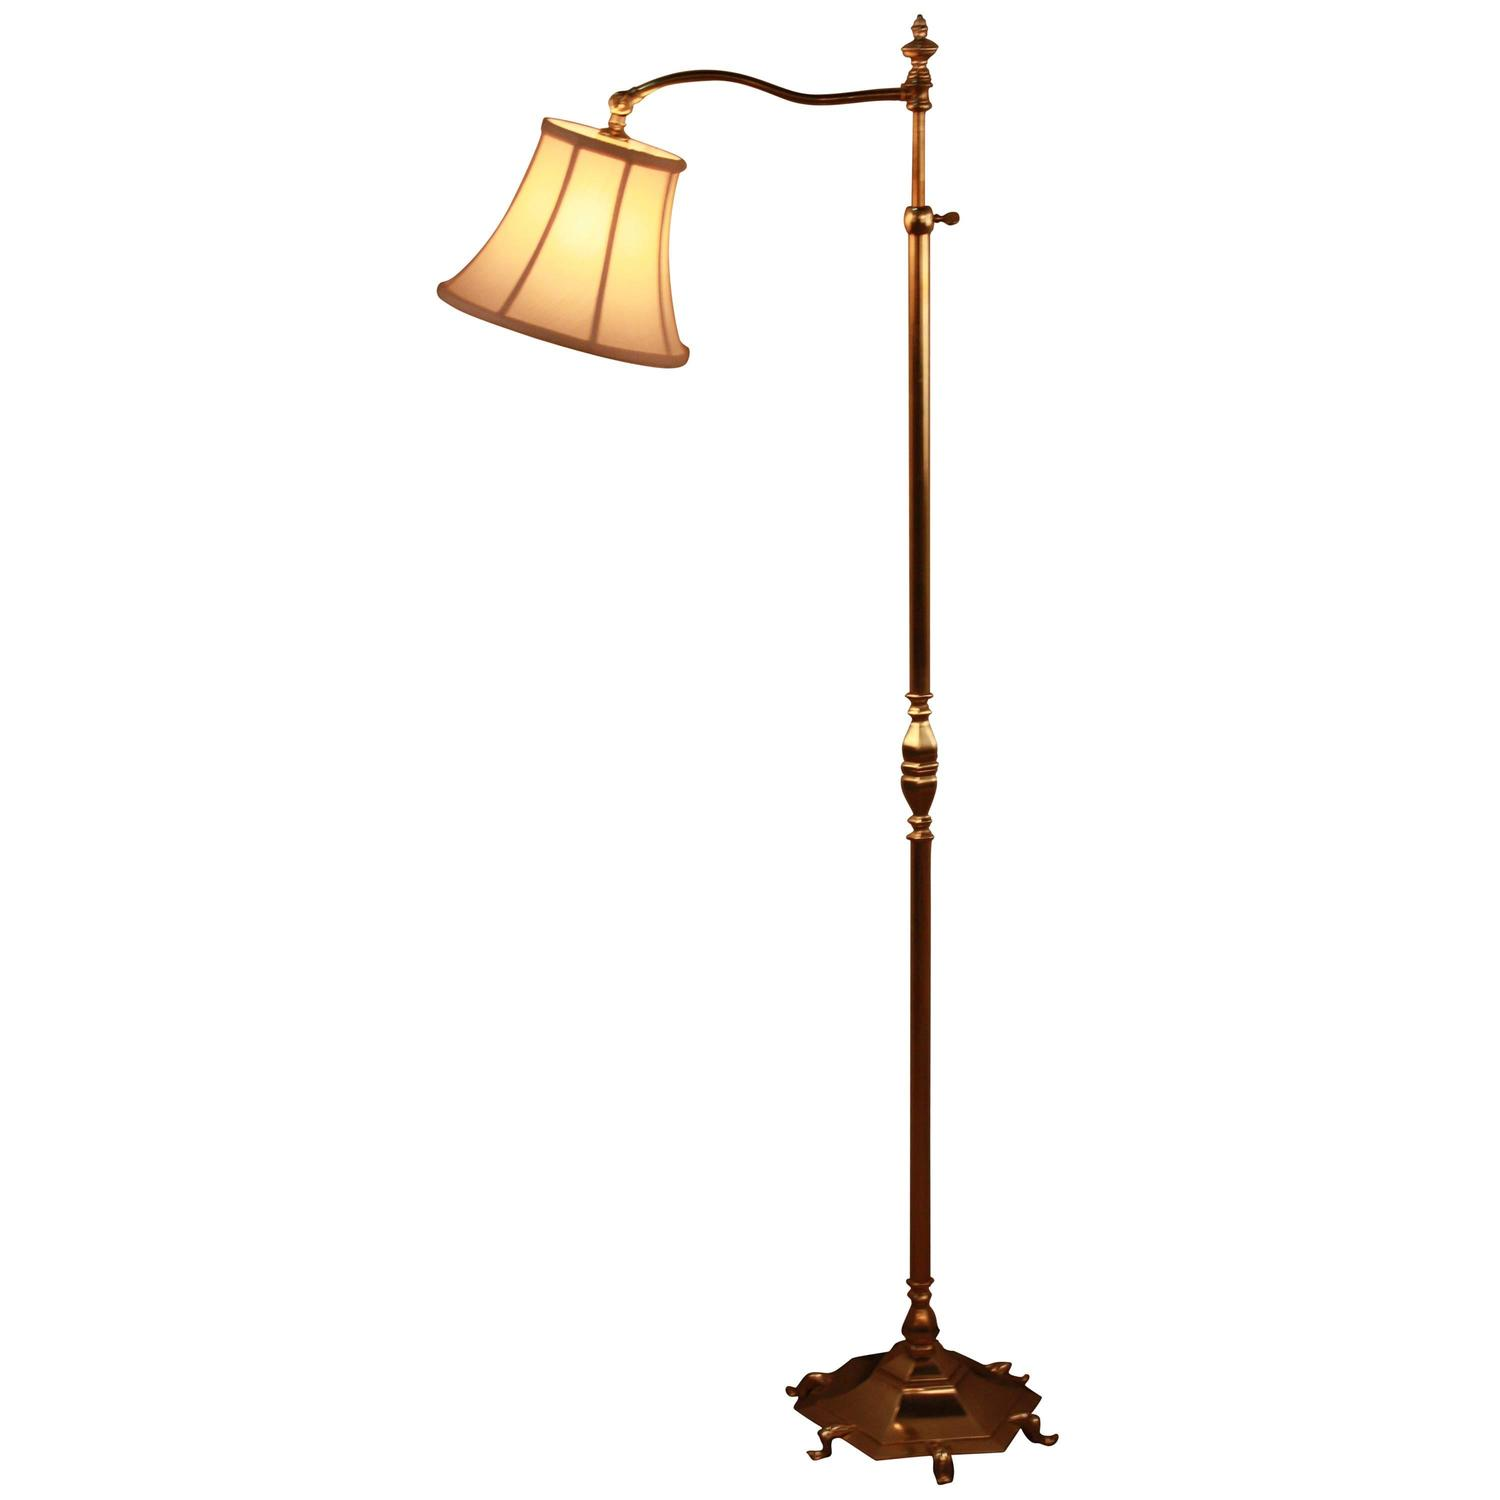 spanish bronze adjustable height floor lamp for sale at 1stdibs. Black Bedroom Furniture Sets. Home Design Ideas